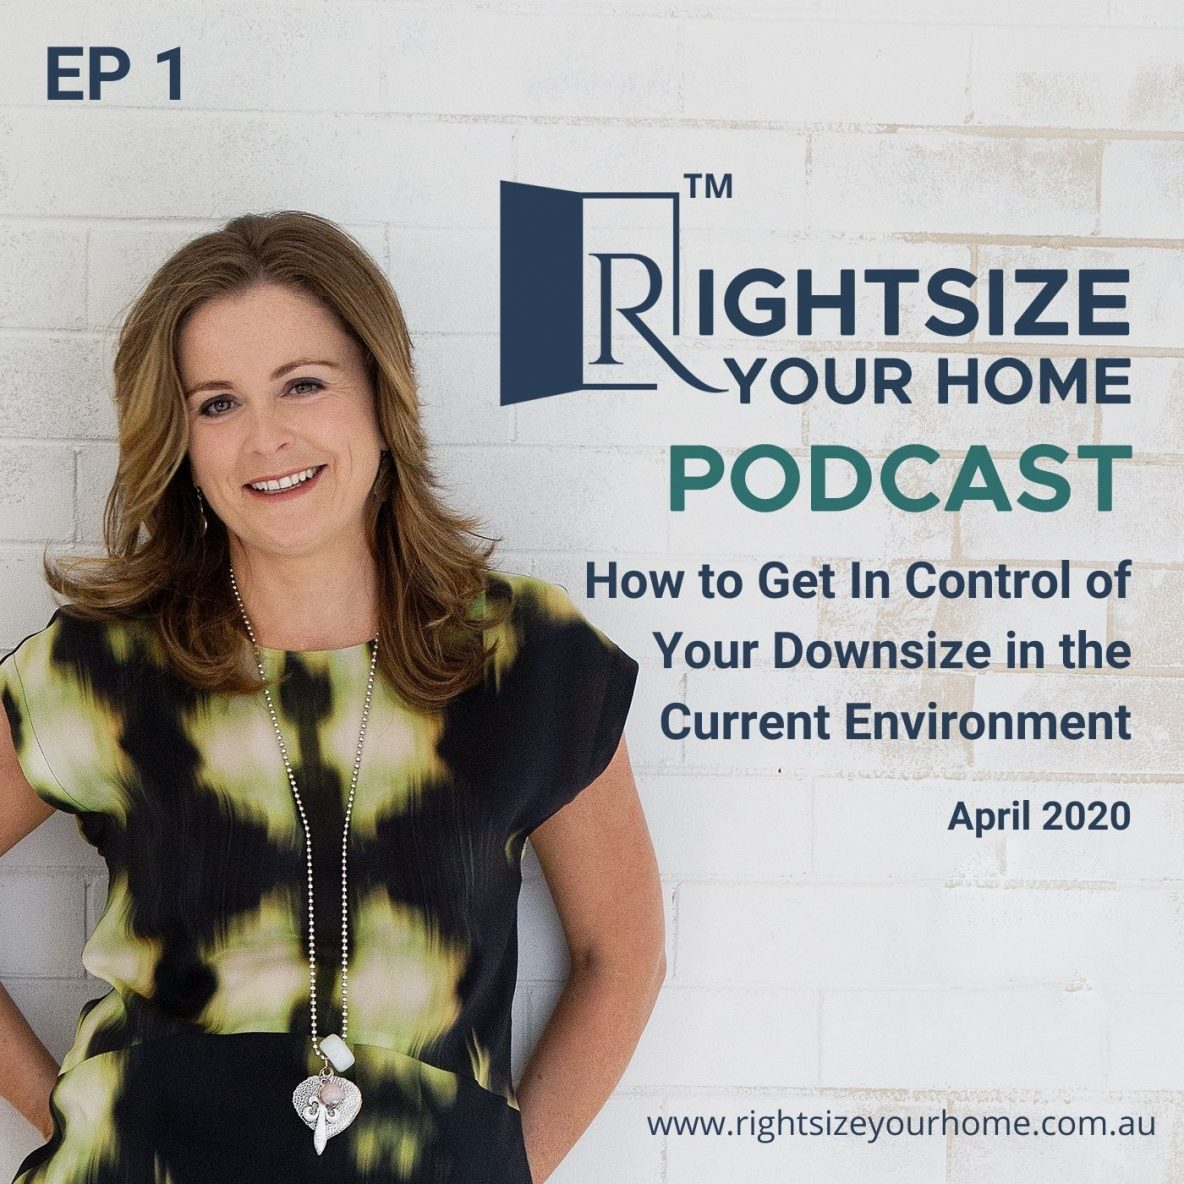 How to Get In Control of Your Downsize in the Current Environment